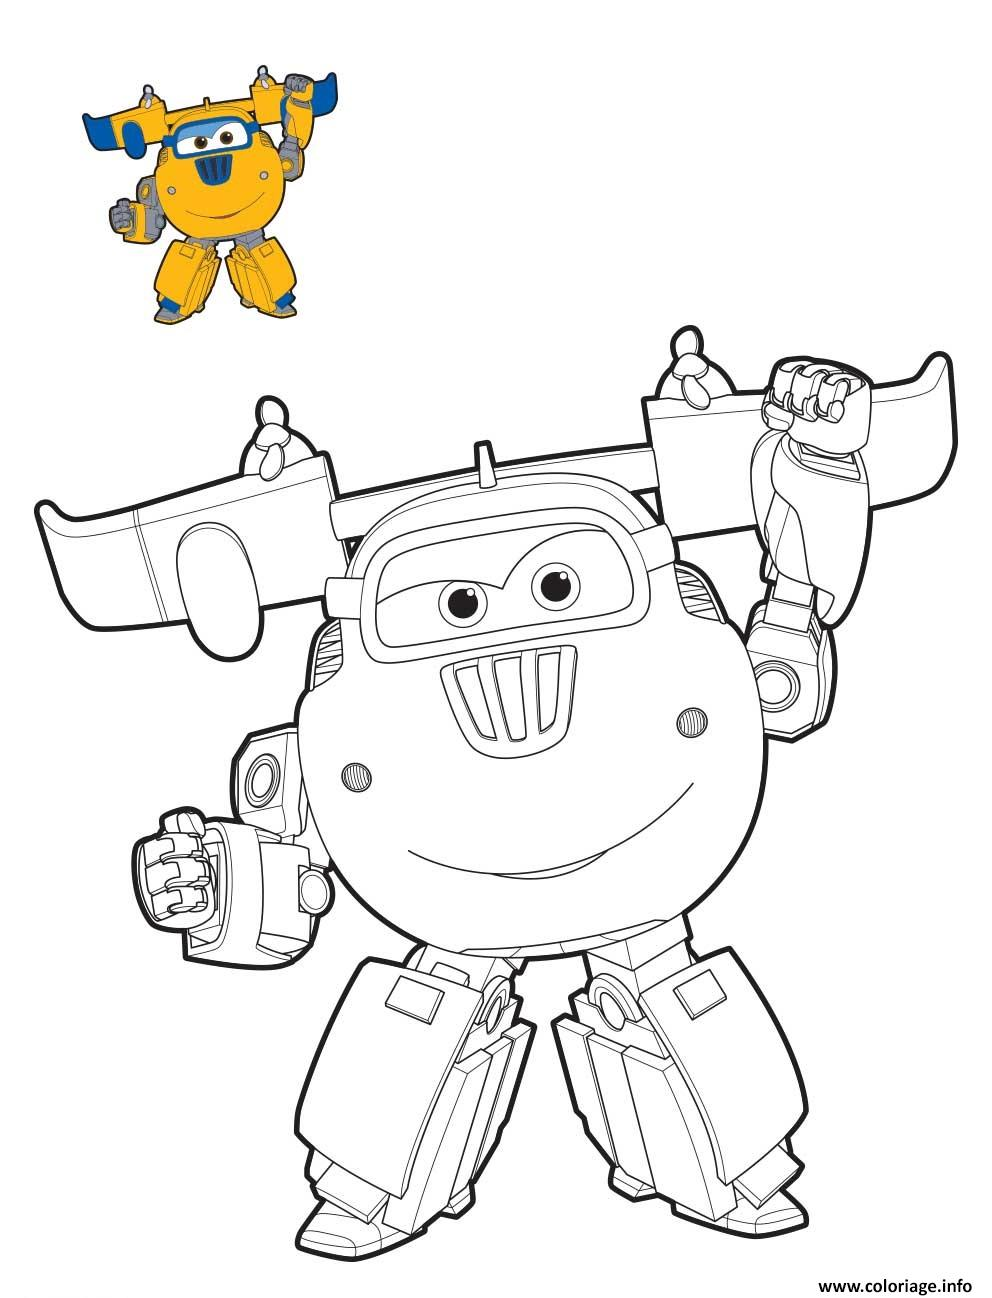 Coloriage Super Wings Donnie Mode Robot Dessin à Imprimer